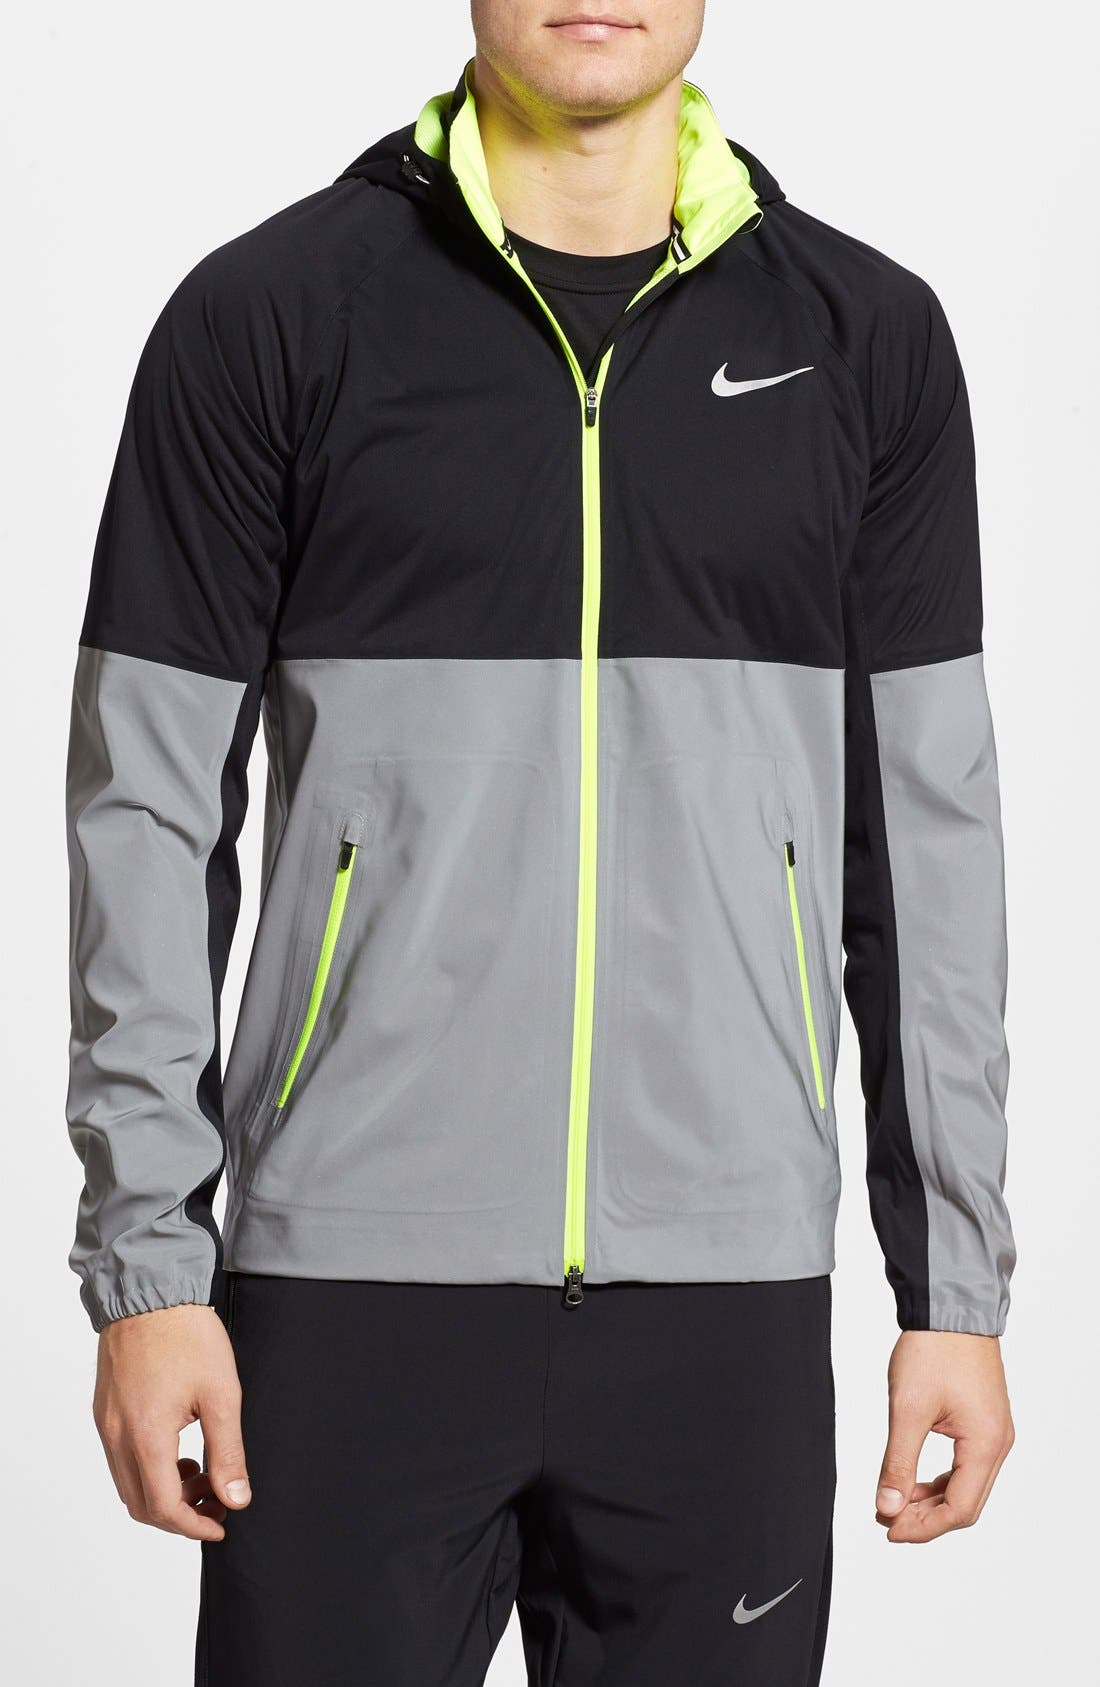 Nike 'Shield Flash' Storm-FIT Running Jacket with Detachable Hood